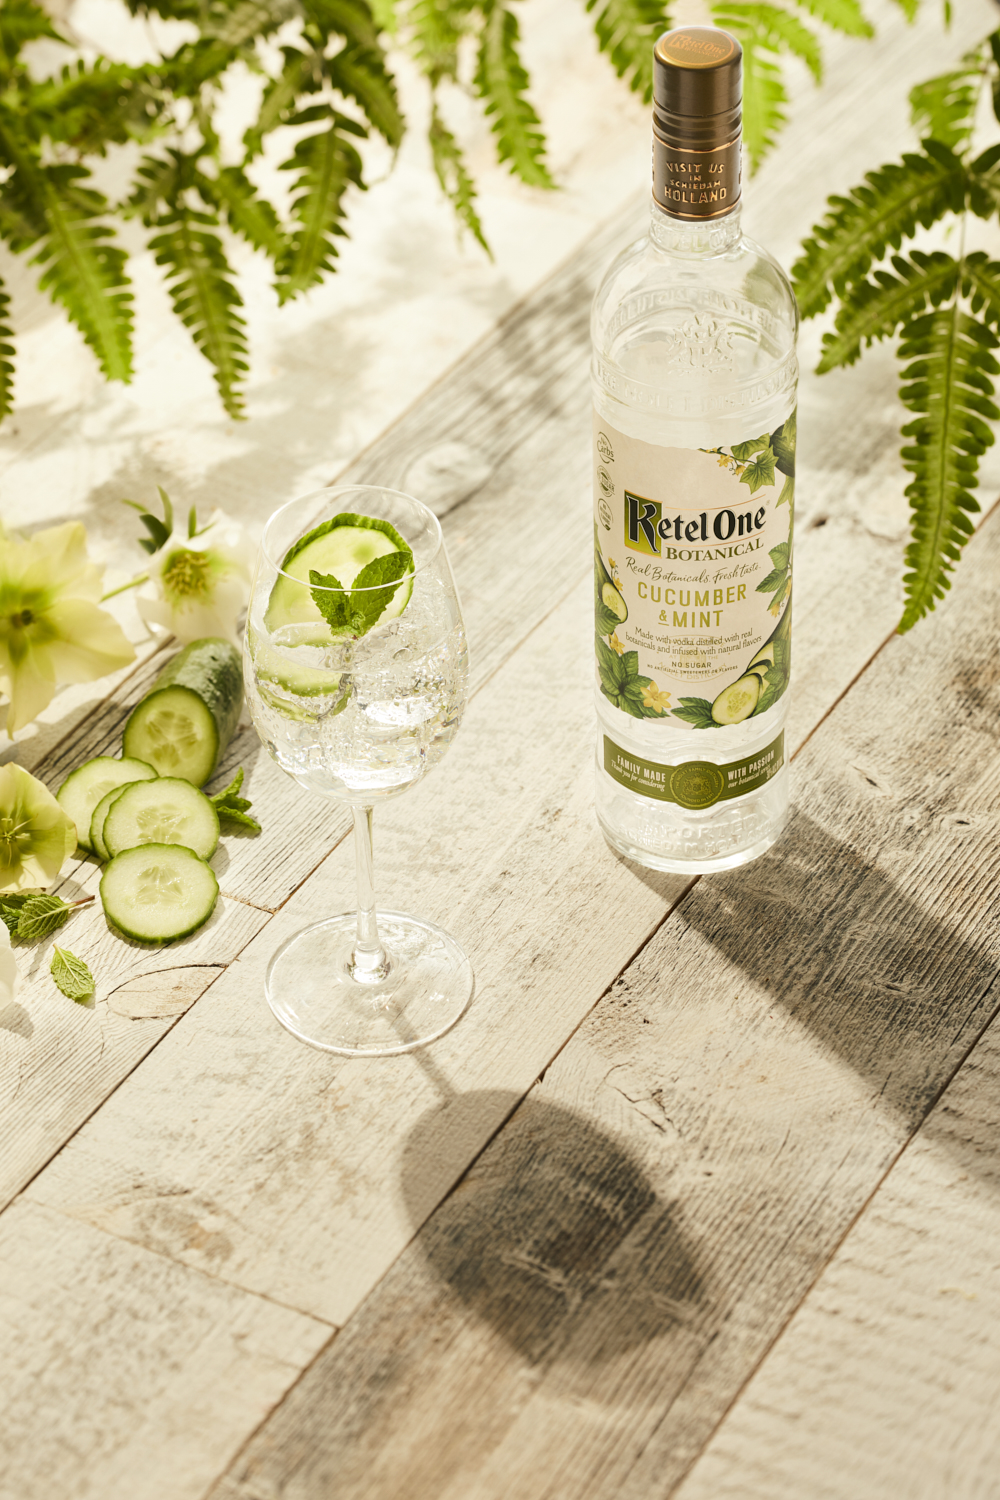 Introducing New Ketel One Botanical, A First-Of-Its-Kind